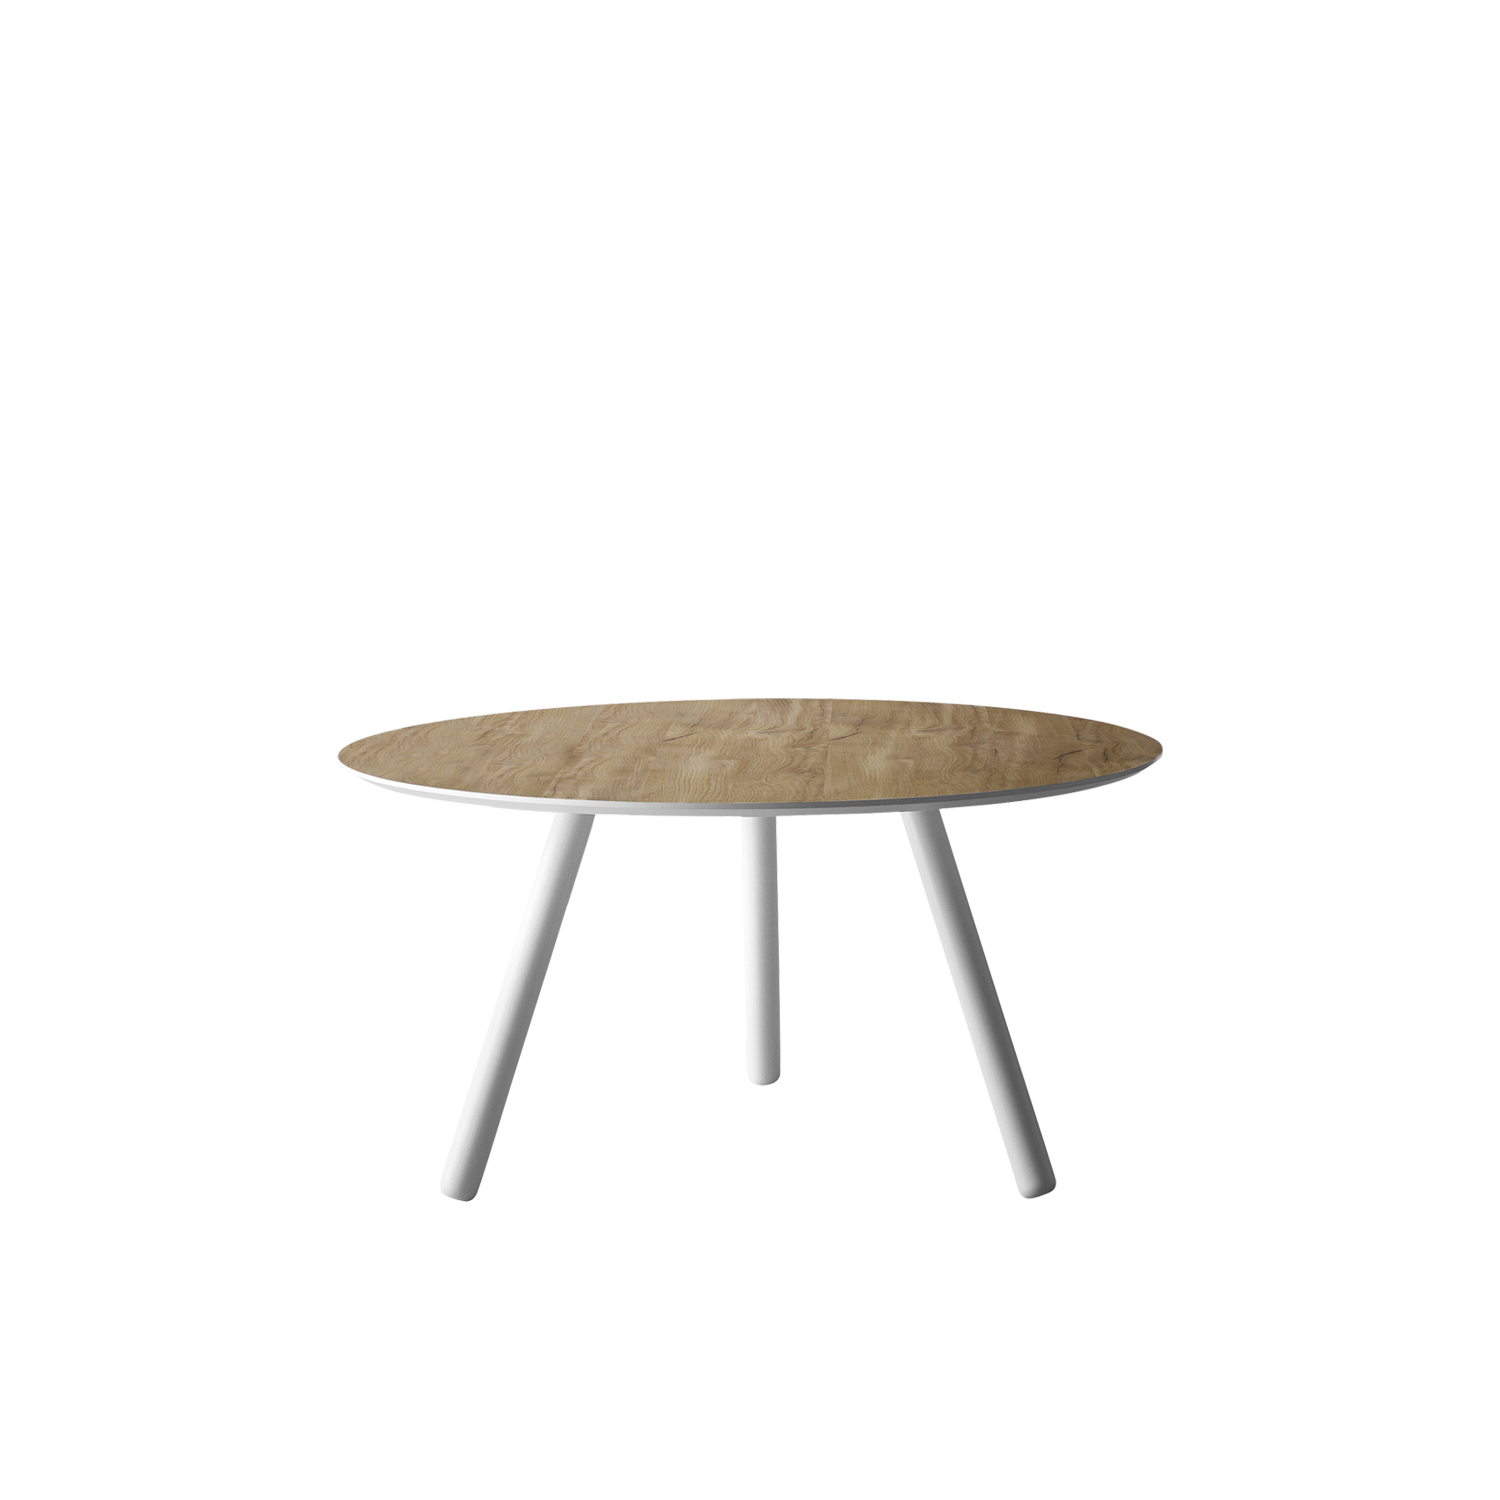 Pixie Round Wooden Table - Pixie is available with oval, round, or rectangular top lacquered white, black or inflamed oak, black ash, vintage oak, heat-treated oak and Canaletto walnut veneer. The legs are lacquered in the same finish of the top or realised in natural ash, grey aniline or black aniline.